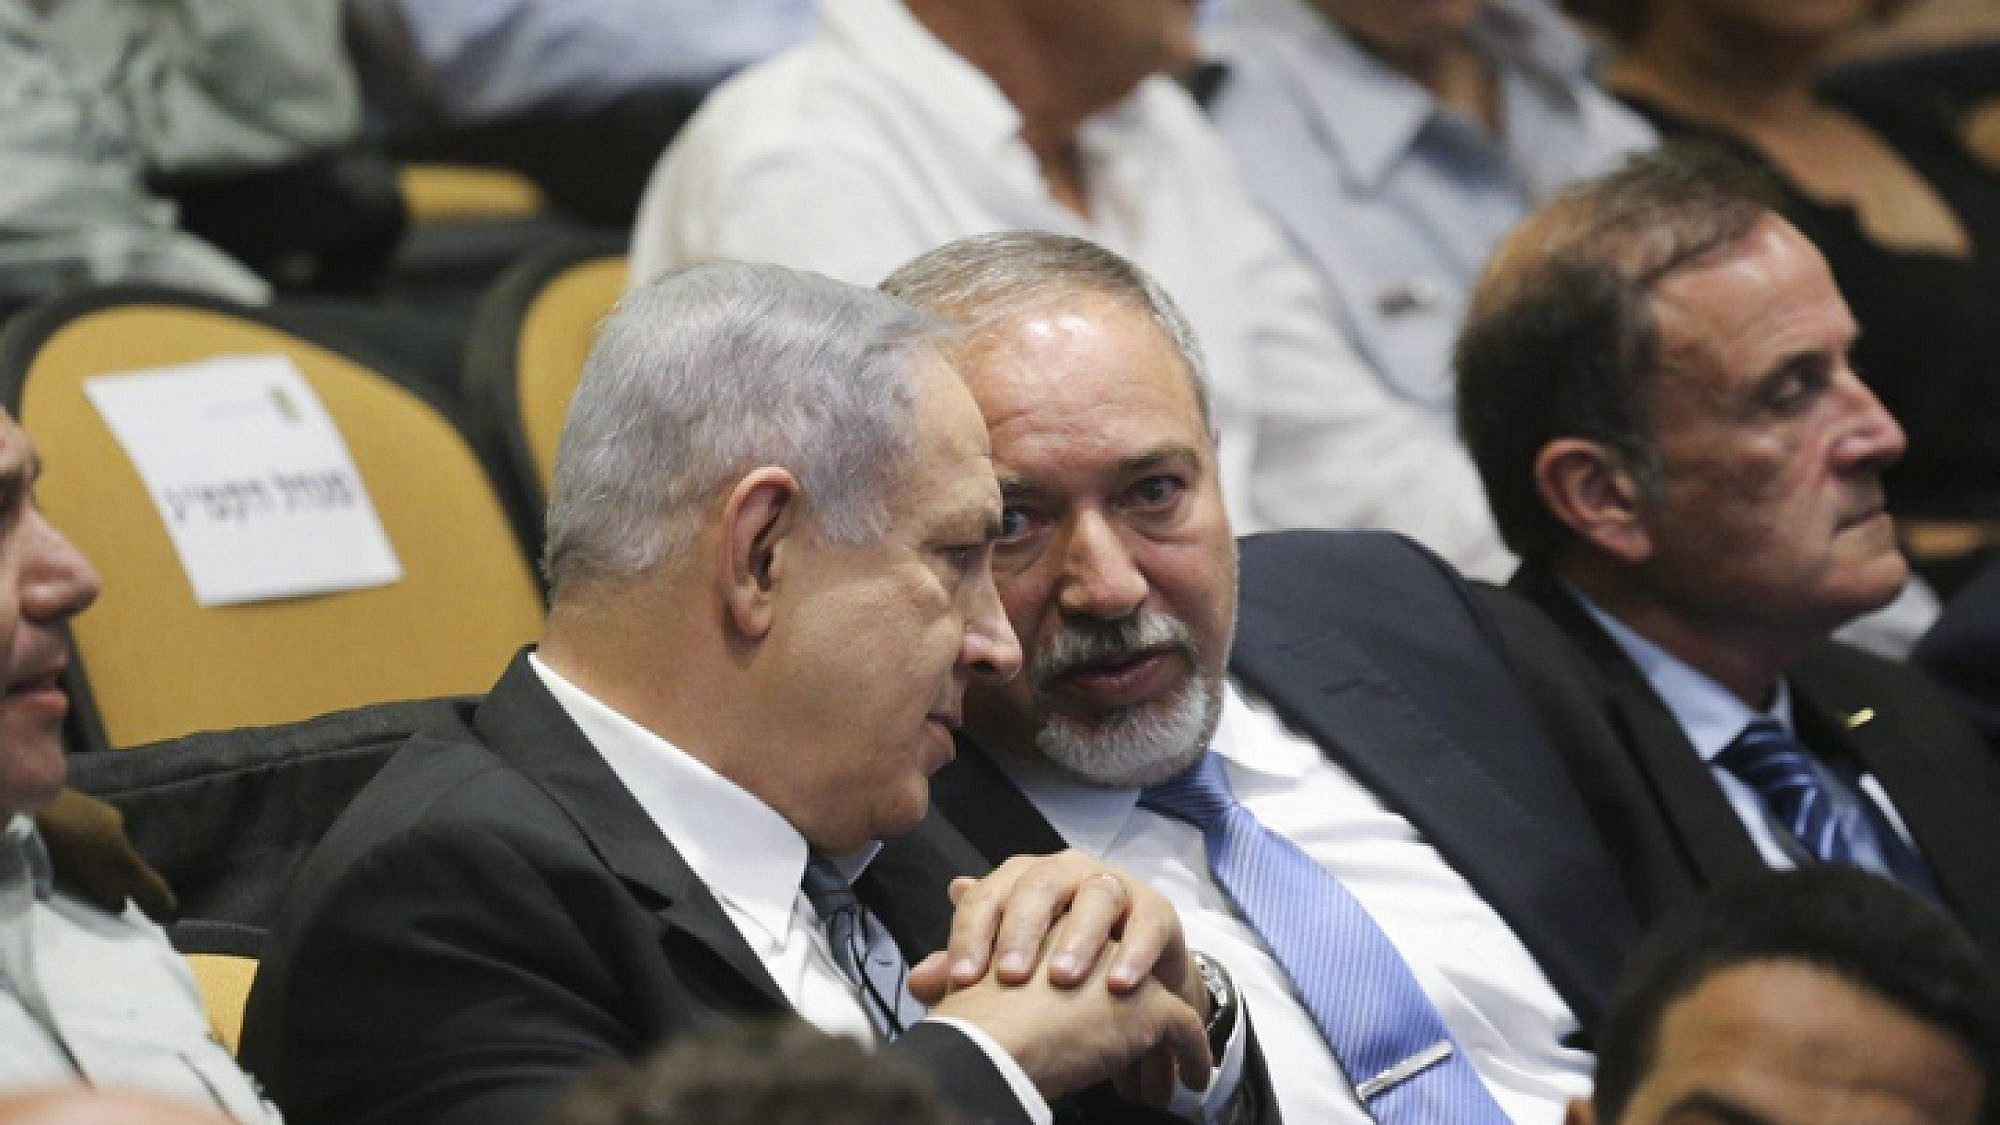 Netanyahu in emergency talks amid Israel coalition crisis